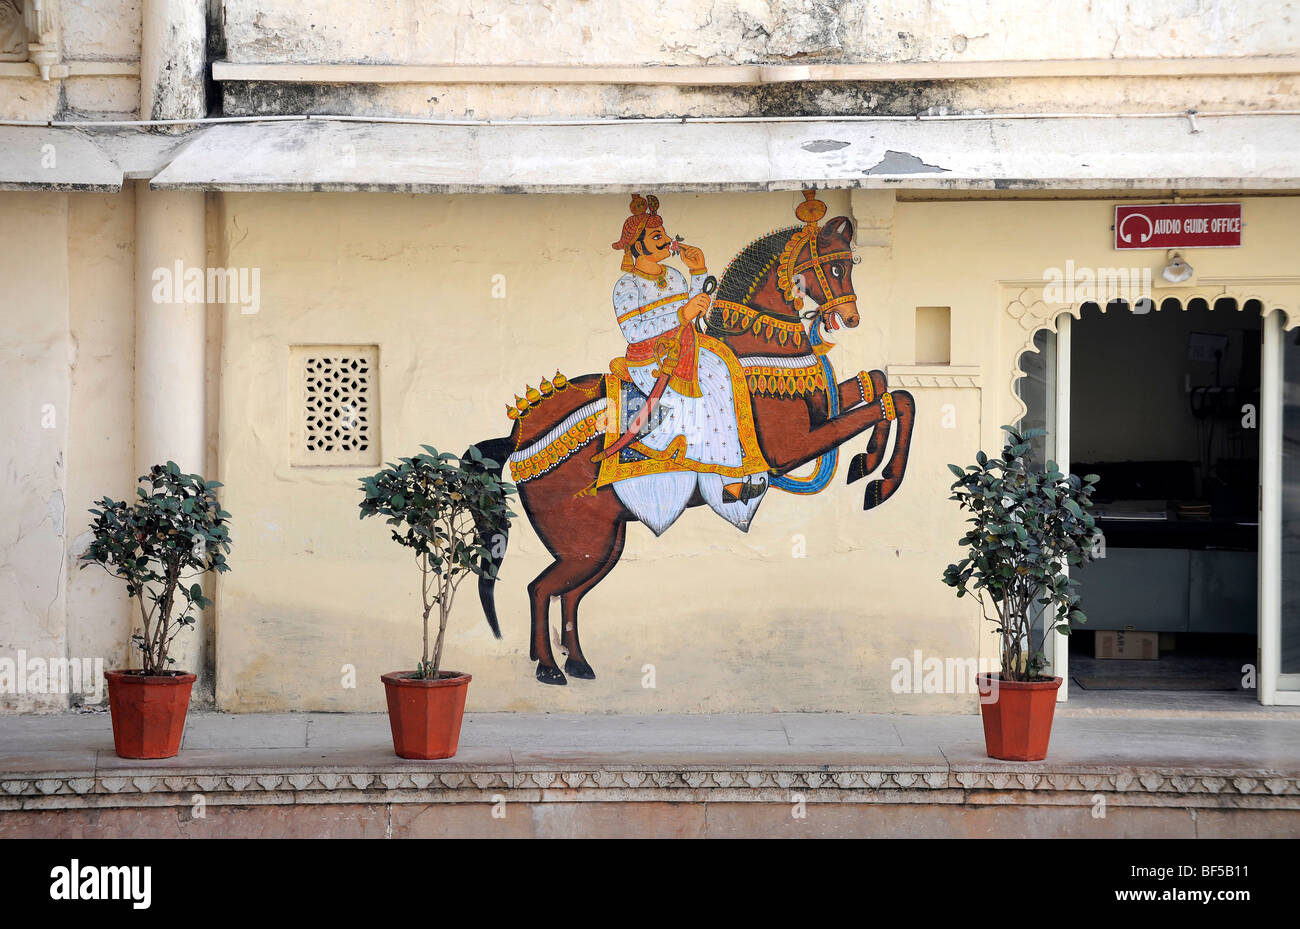 Mural of a horse with a rider, city palace, Udaipur, Rajasthan, North India, India, South Asia, Asia - Stock Image